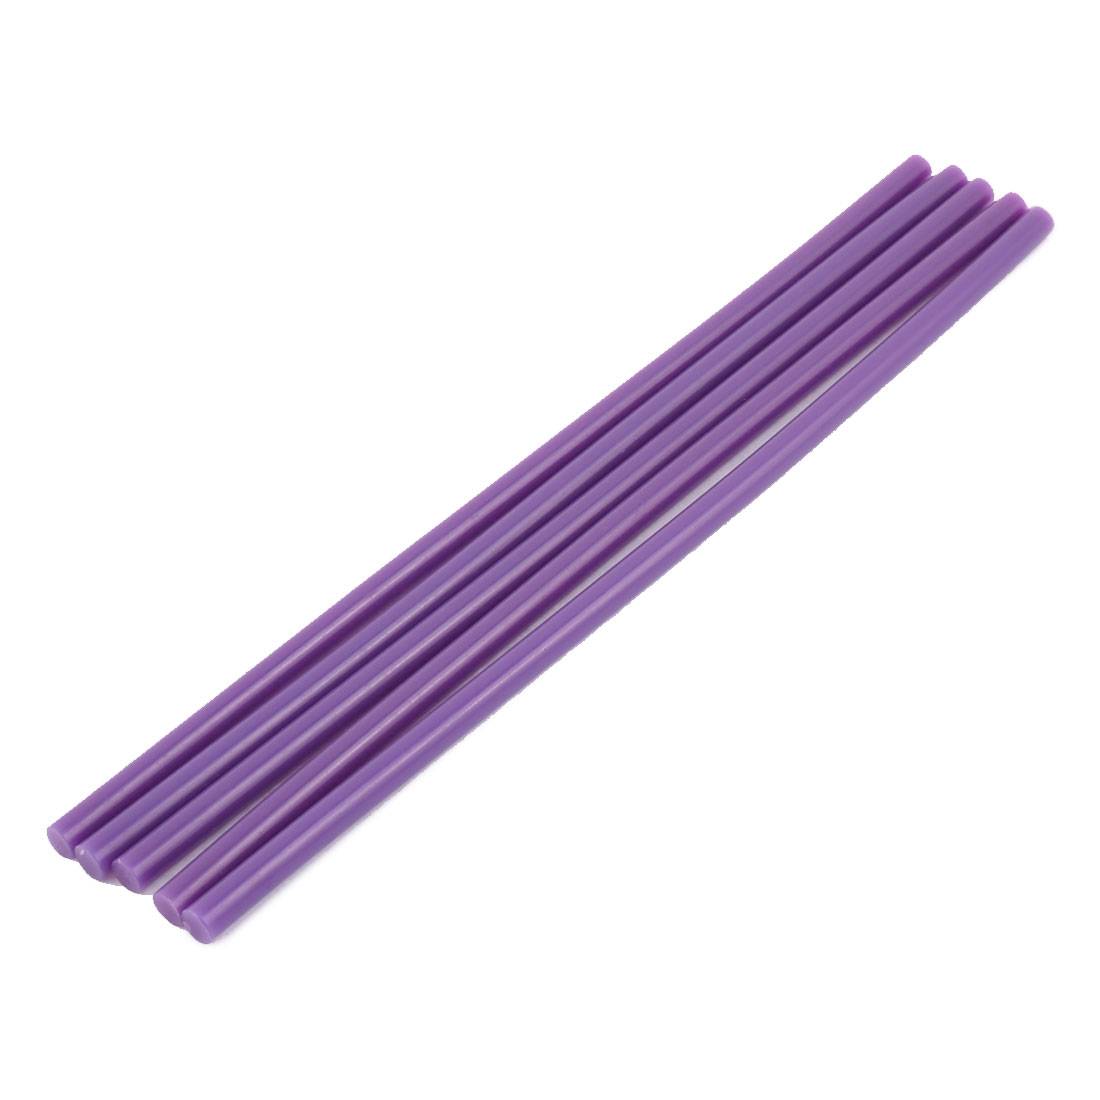 5Pcs 7mm x 250mm Purple Hot Melt Glue Stick for Electric Tool Hot Melt Glue Gun